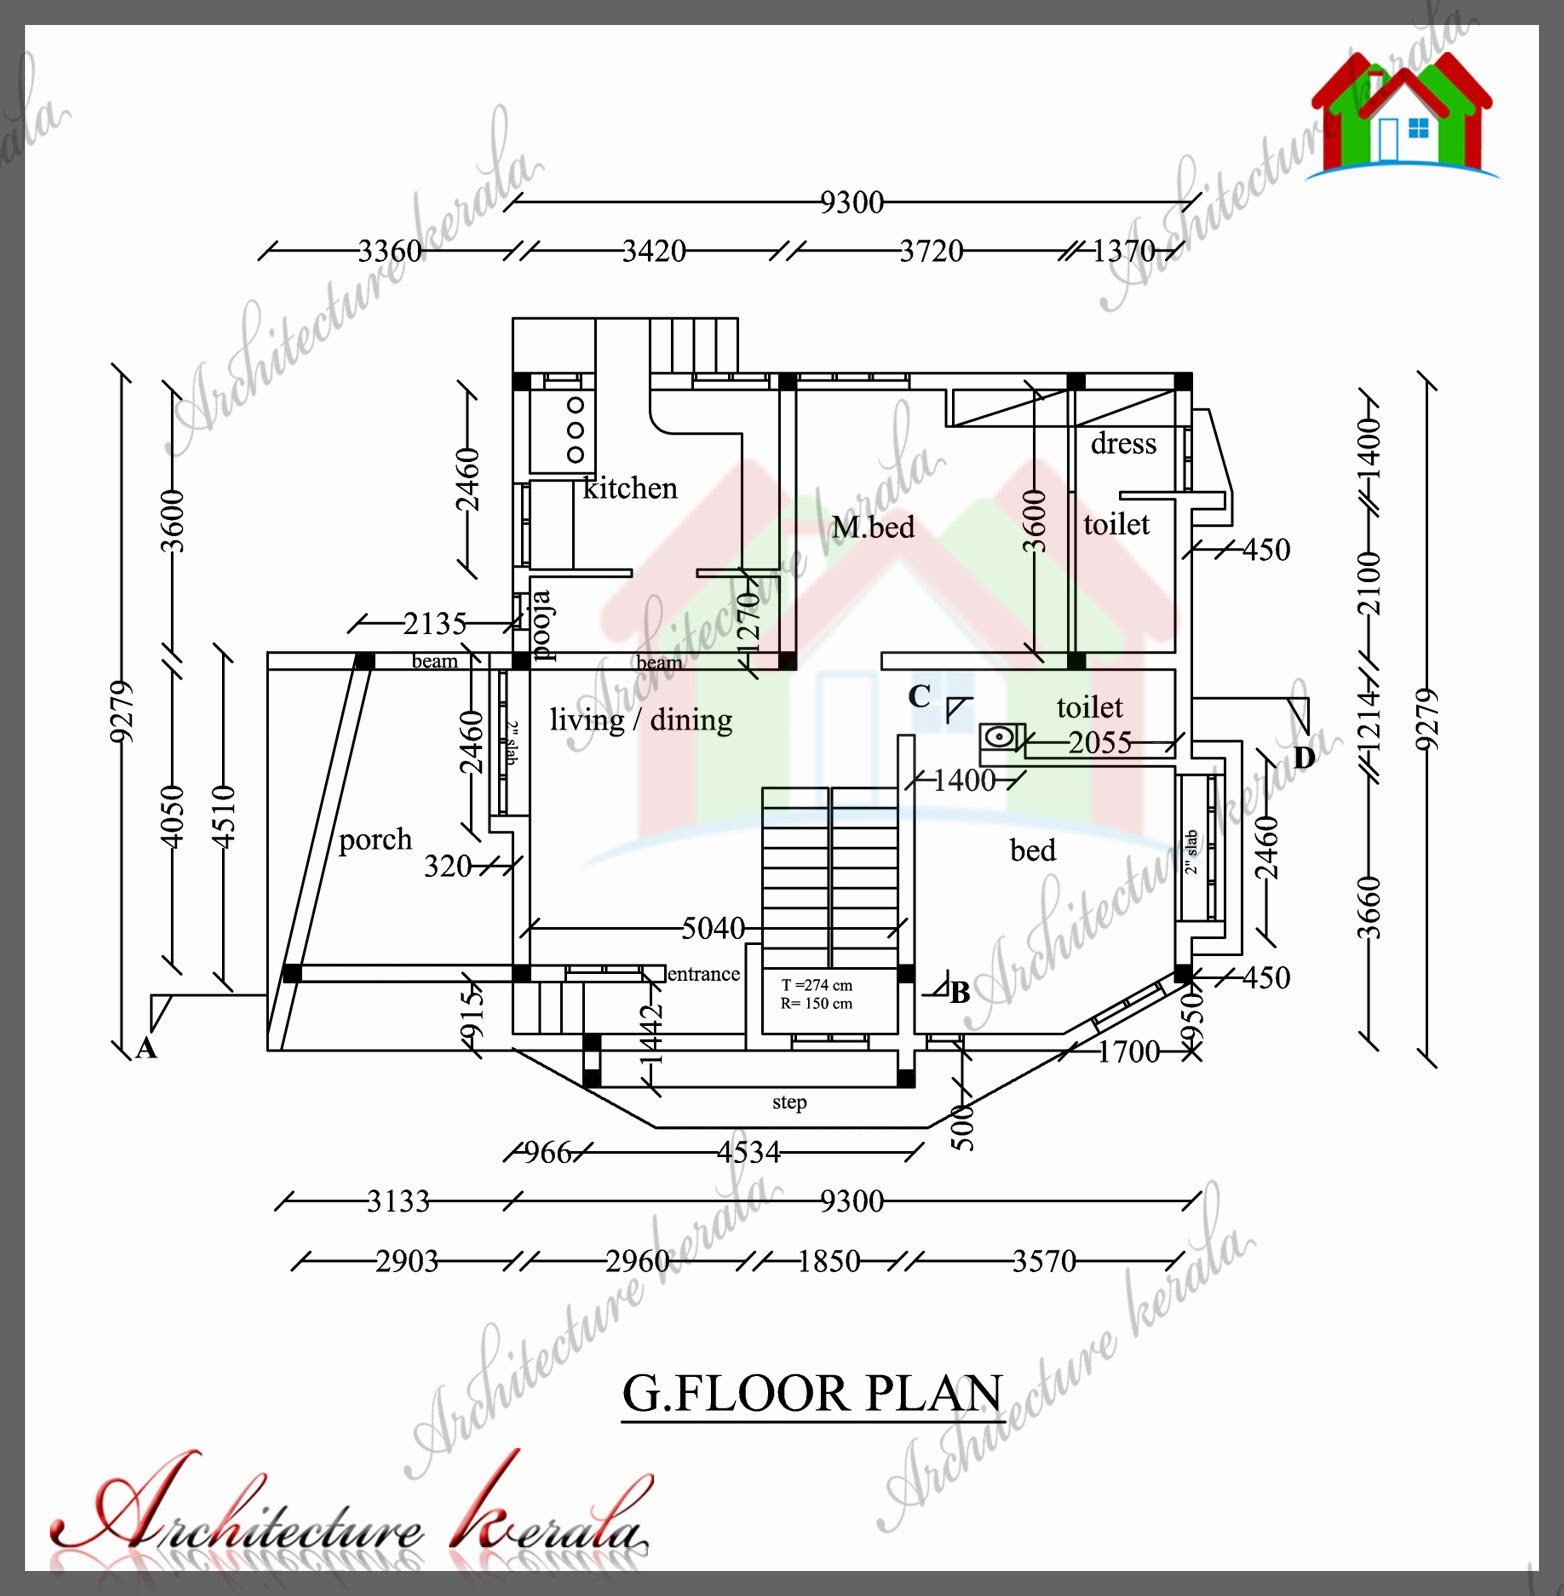 house plan architects in hyderabad house list disign house plan architects in hyderabad